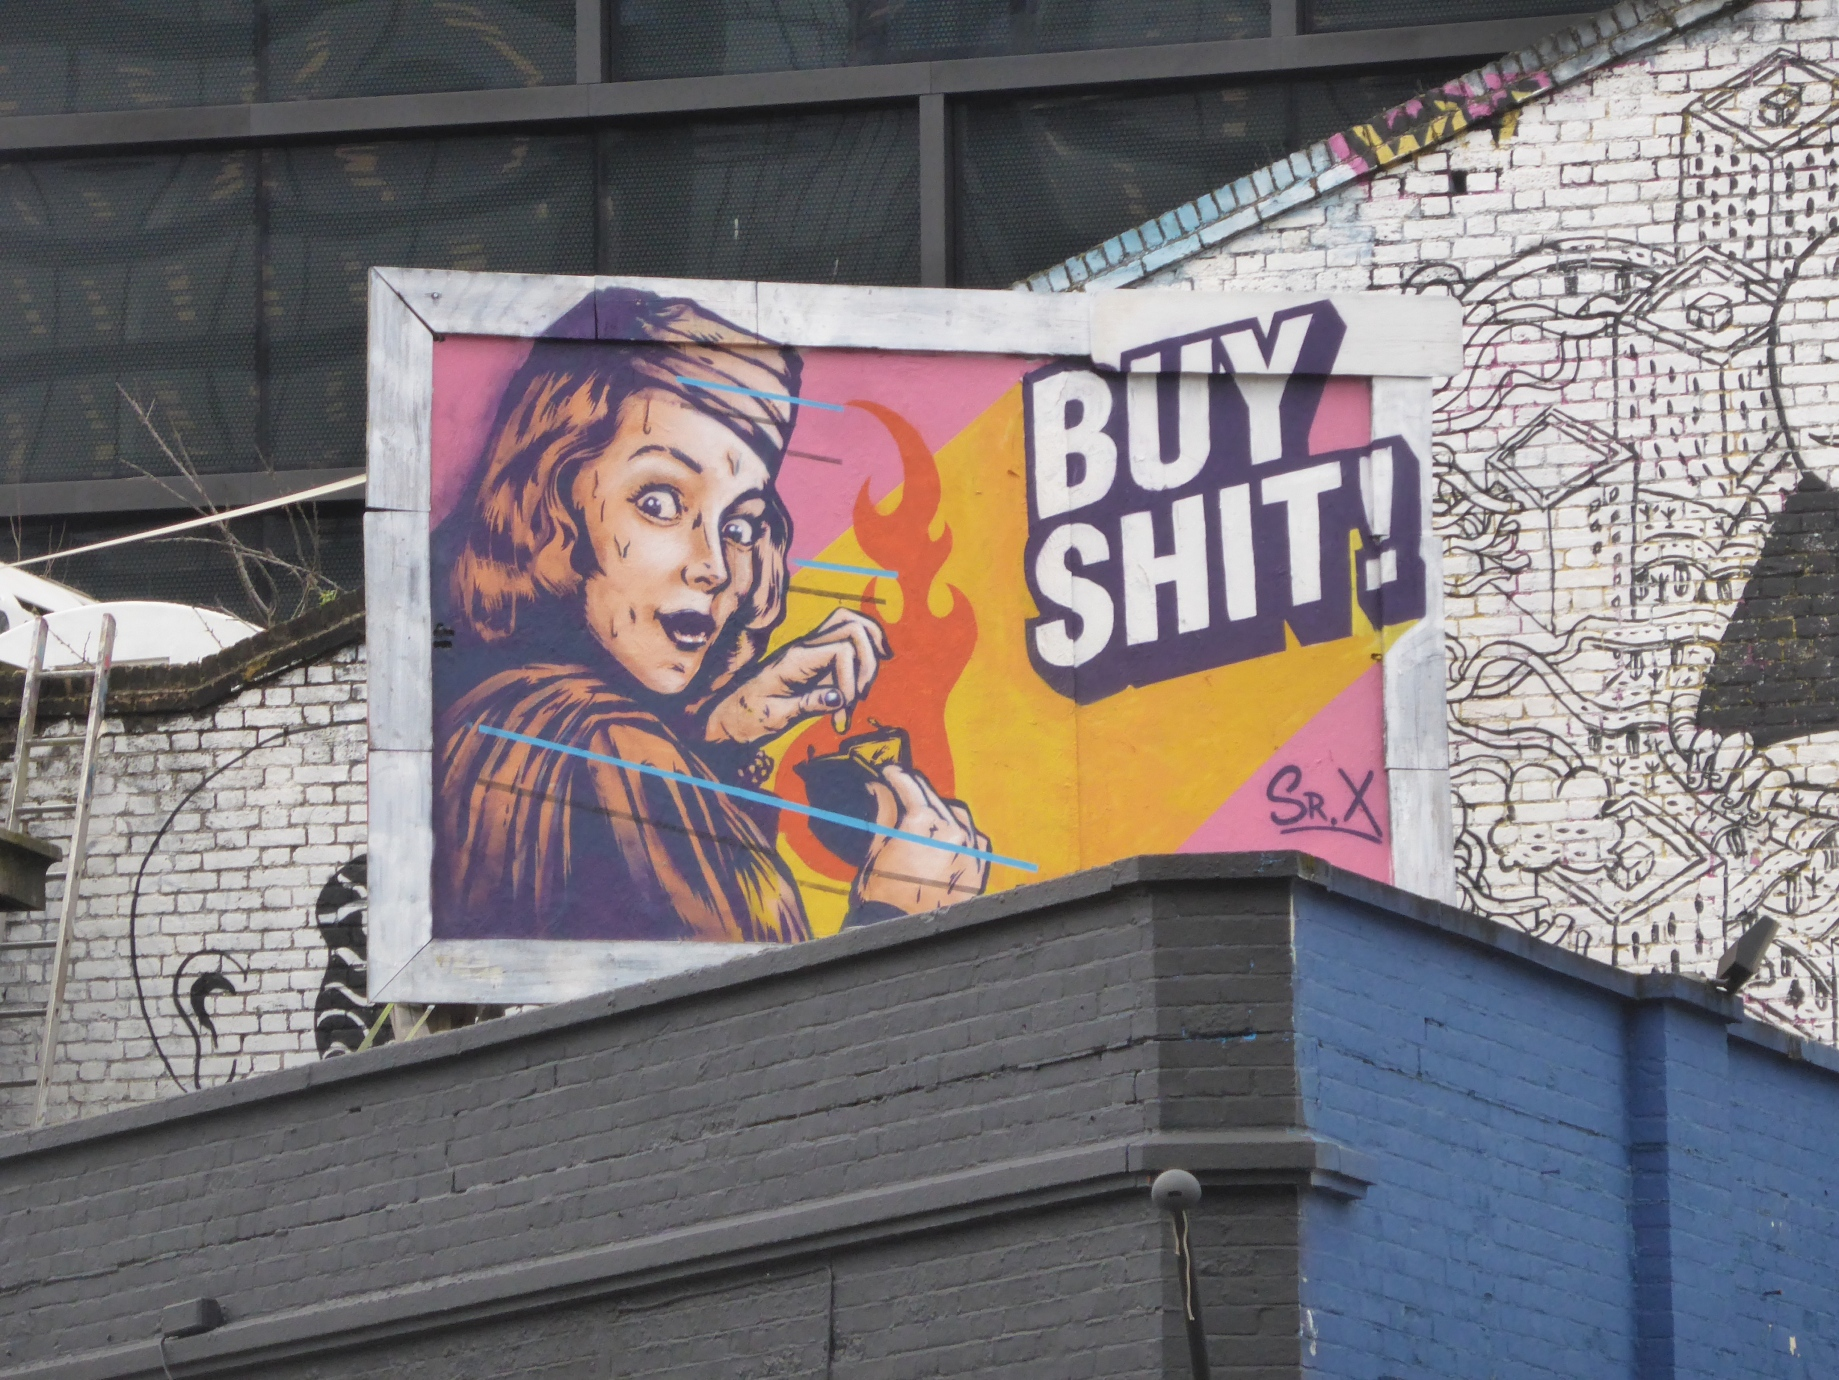 New Sr. X Street Art 'Buy Shit!' In Shoreditch | London Calling Blog